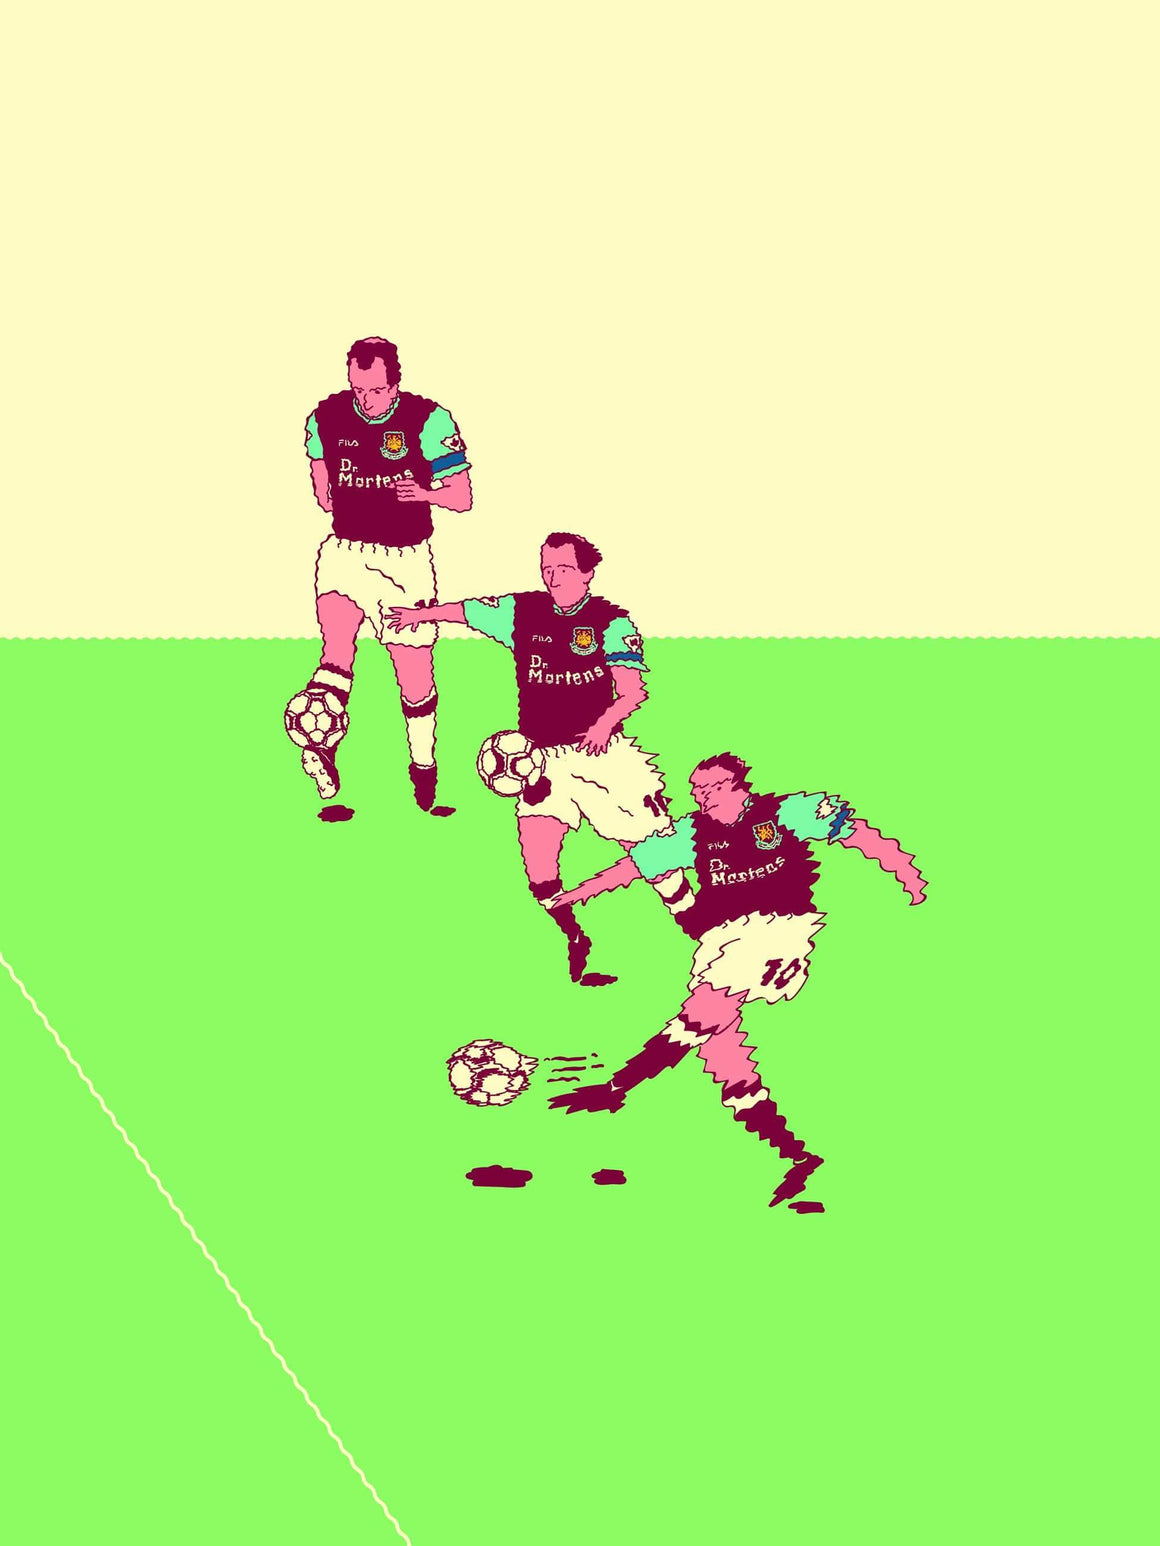 Your First Football Shirt Paolo Di Canio x West Ham A3 print